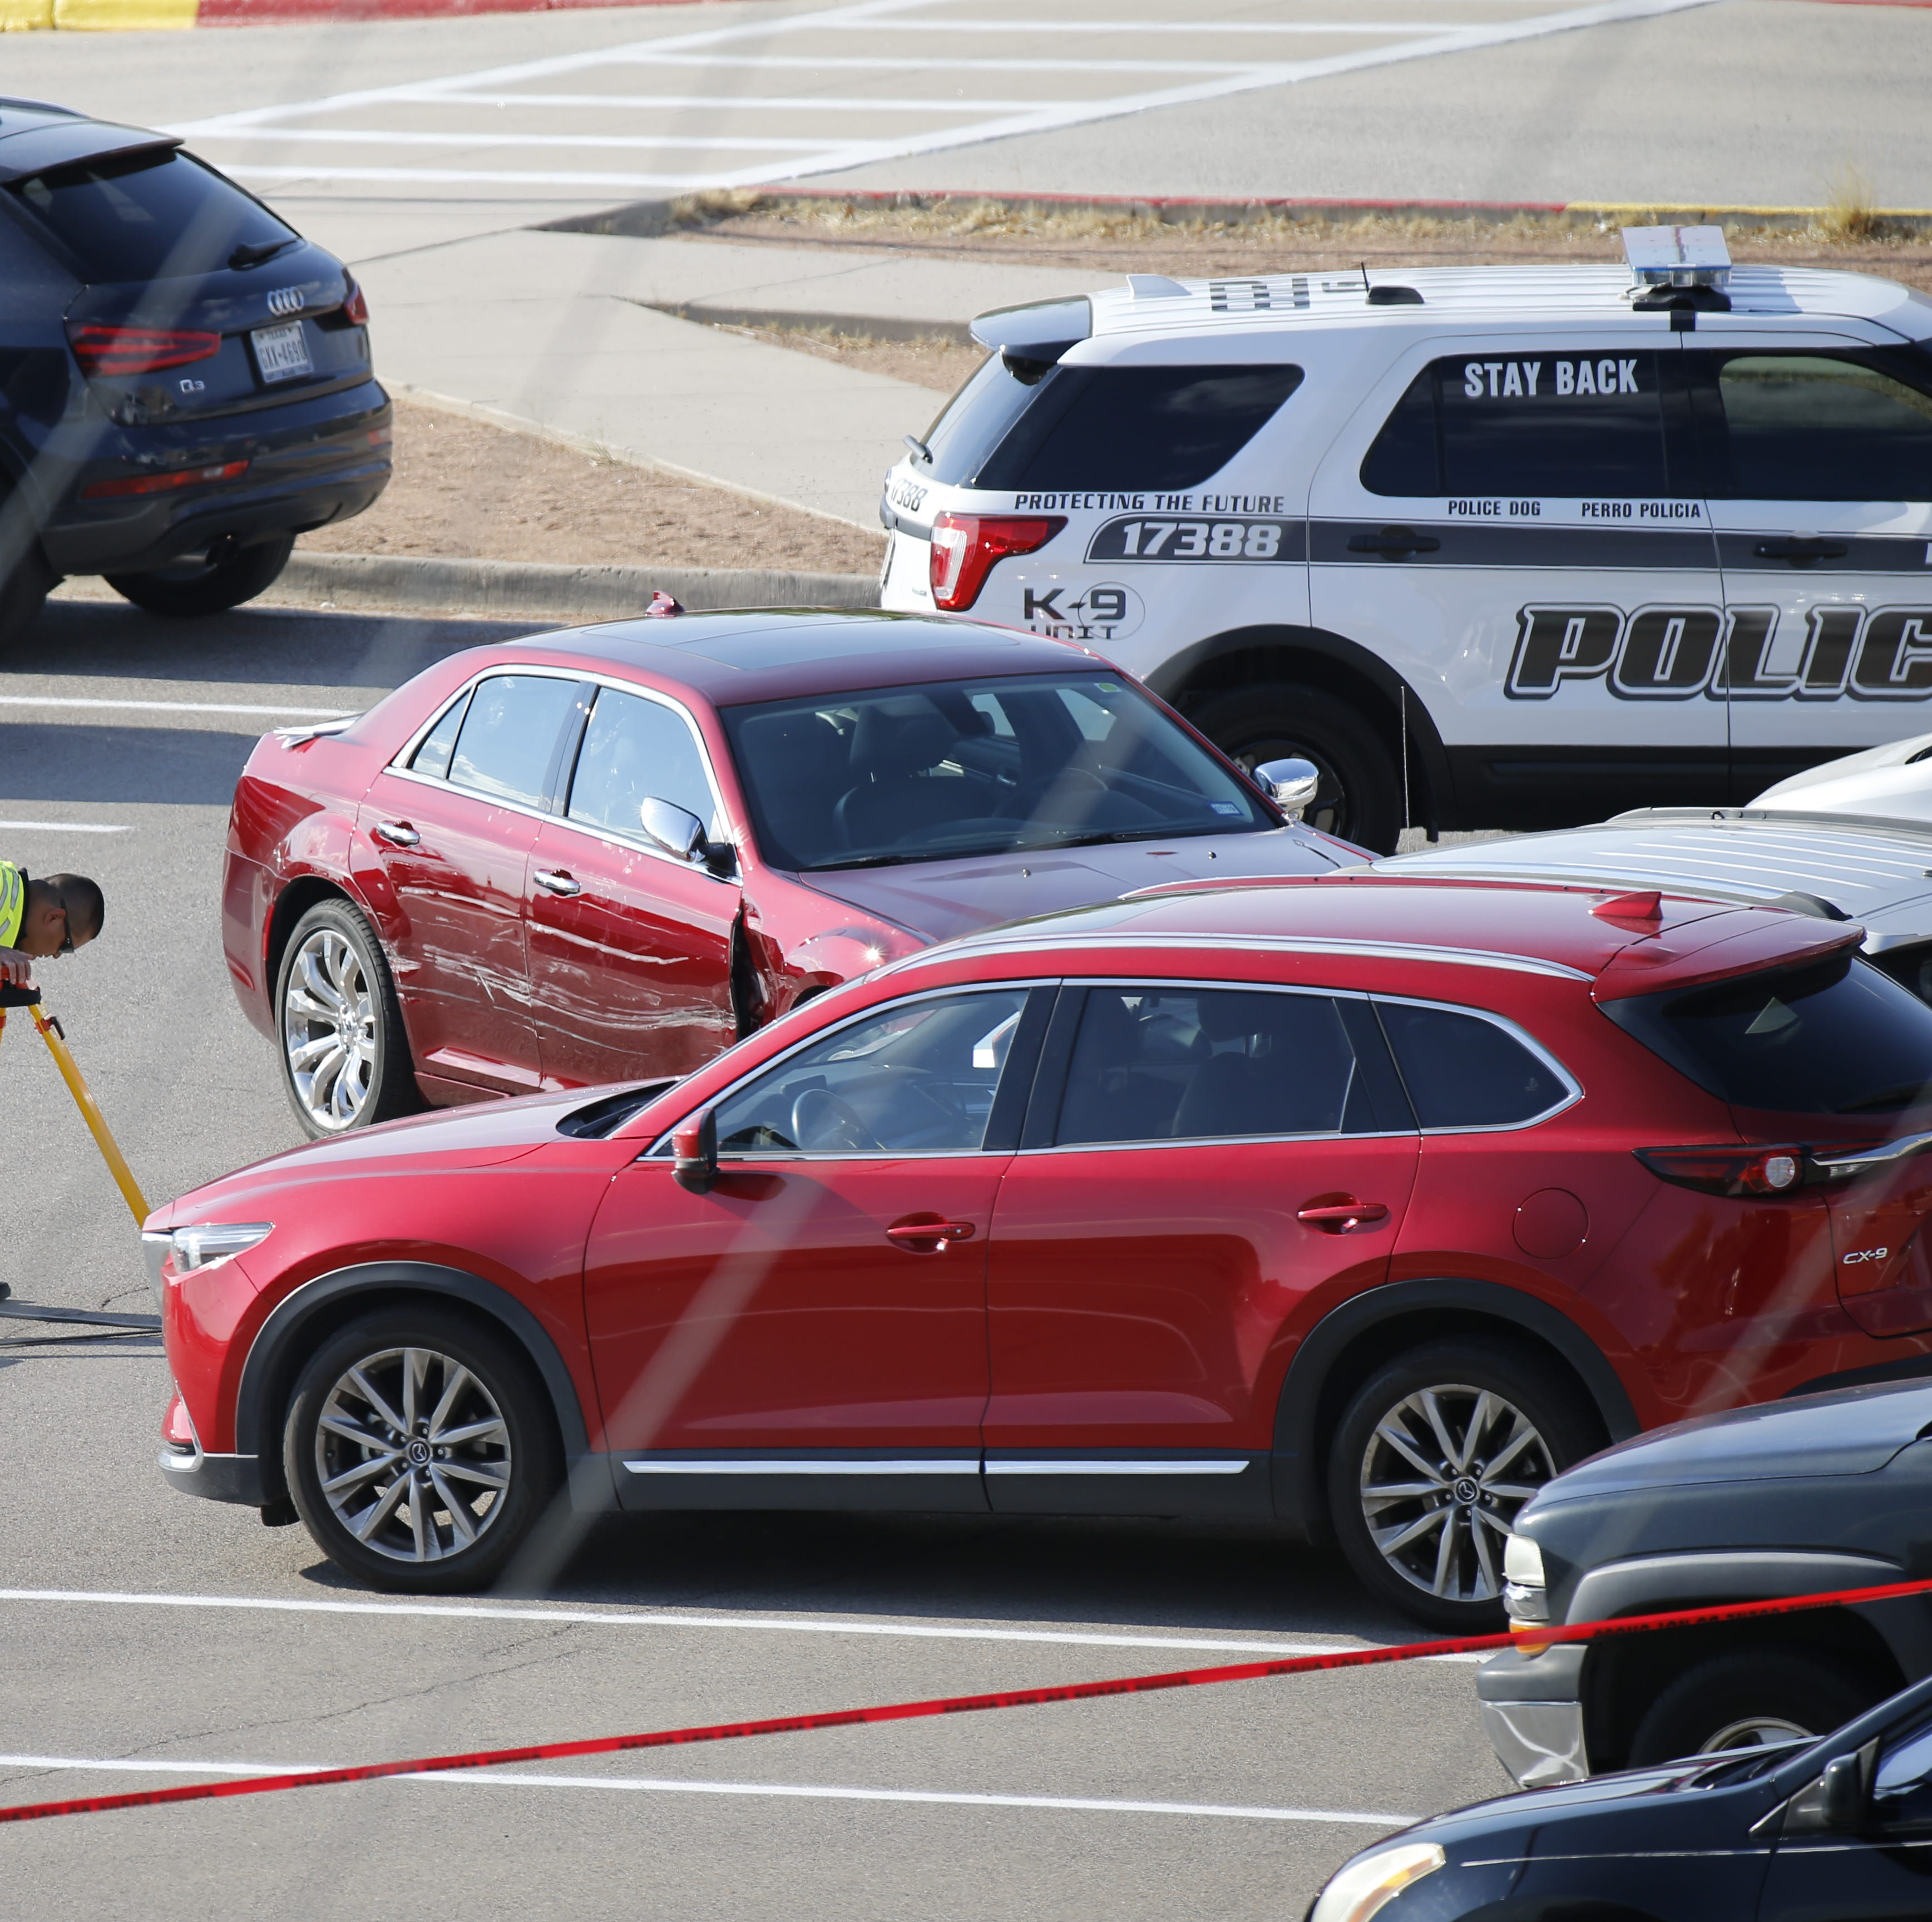 Mother killed by car at Tippin Elementary School in West El Paso